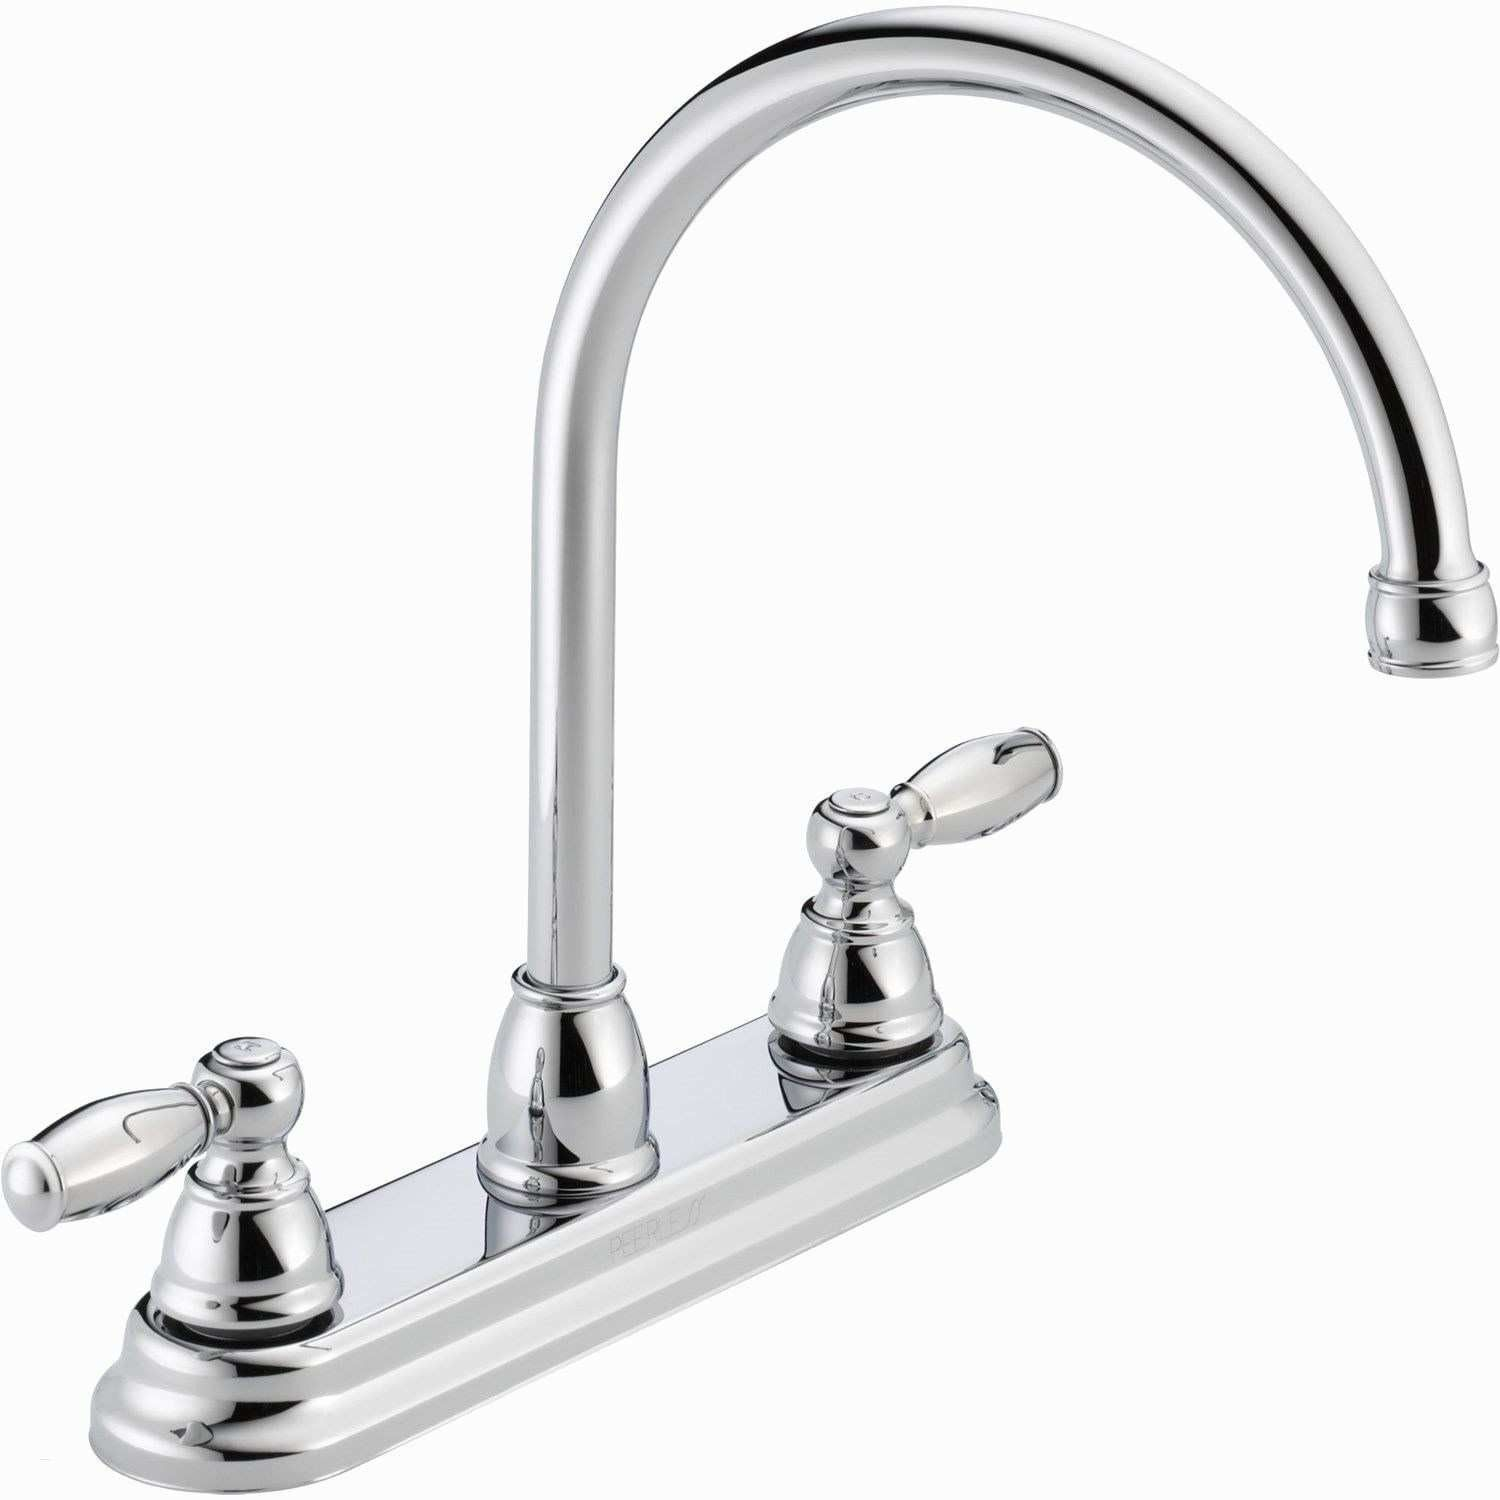 Delta Bathroom Faucets.13 Delta Kitchen Faucet Cartridge 25 Lovely Delta Bathroom Faucet